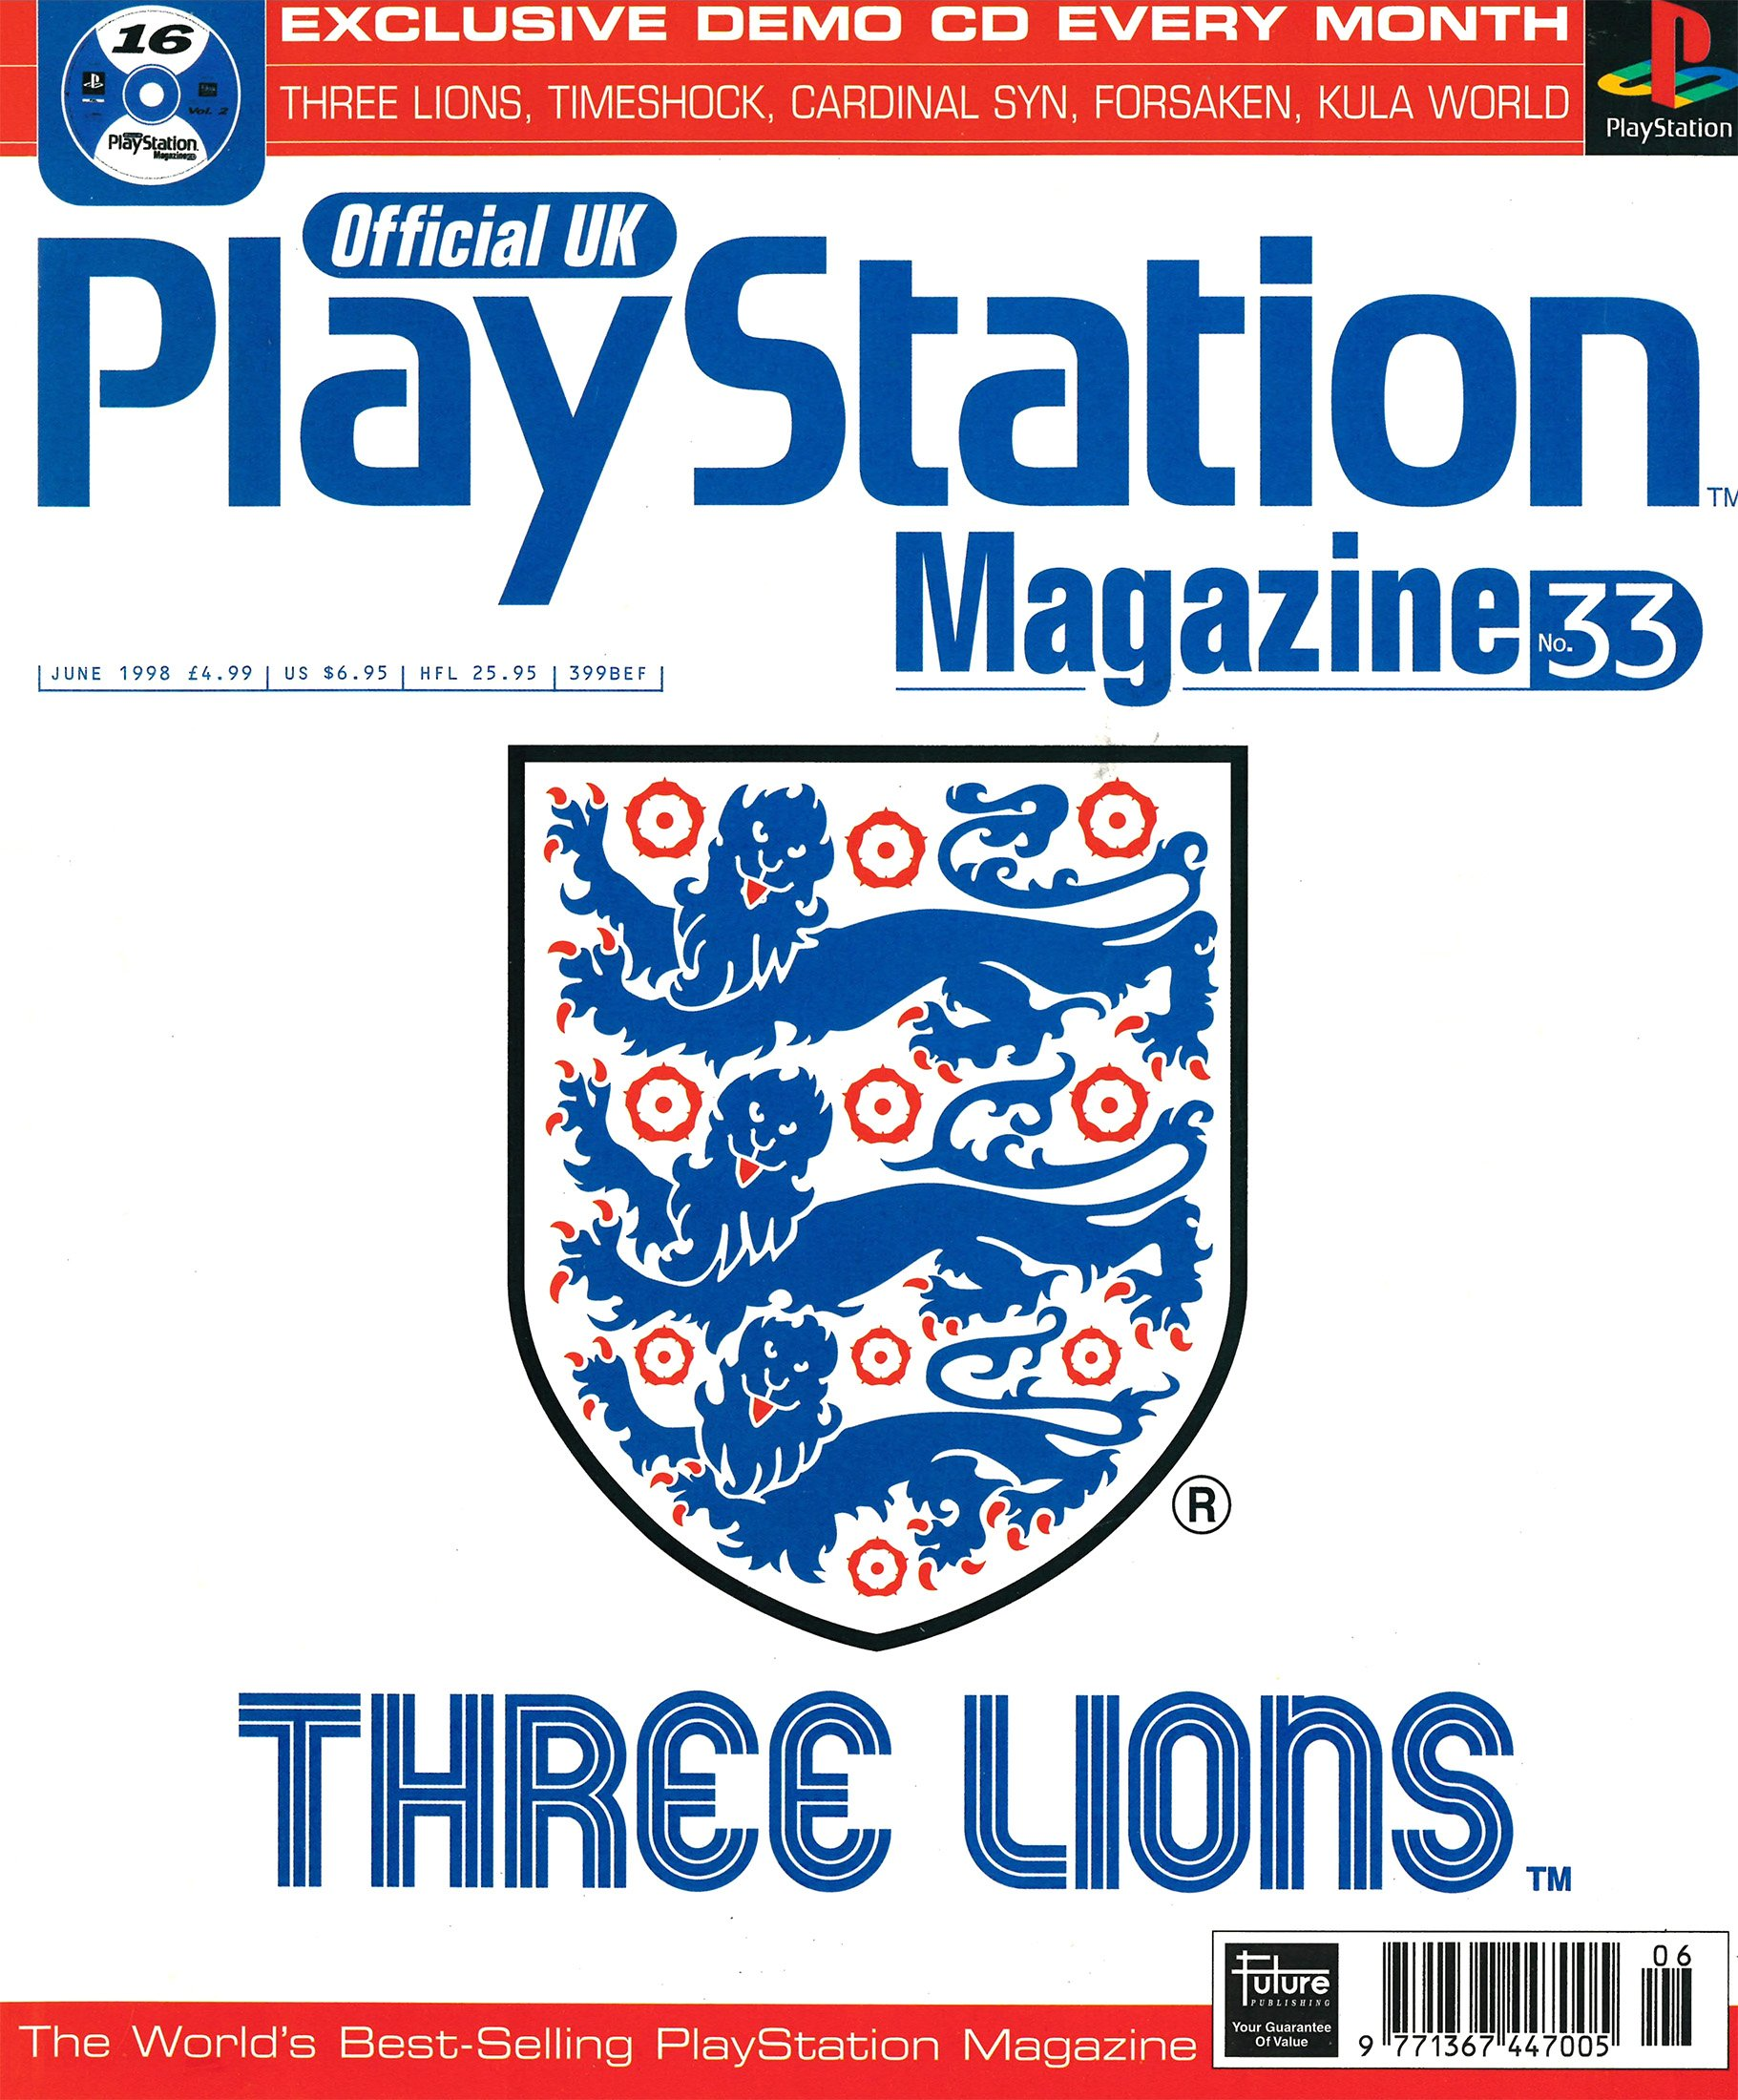 Official UK PlayStation Magazine Issue 033 (June 1998)